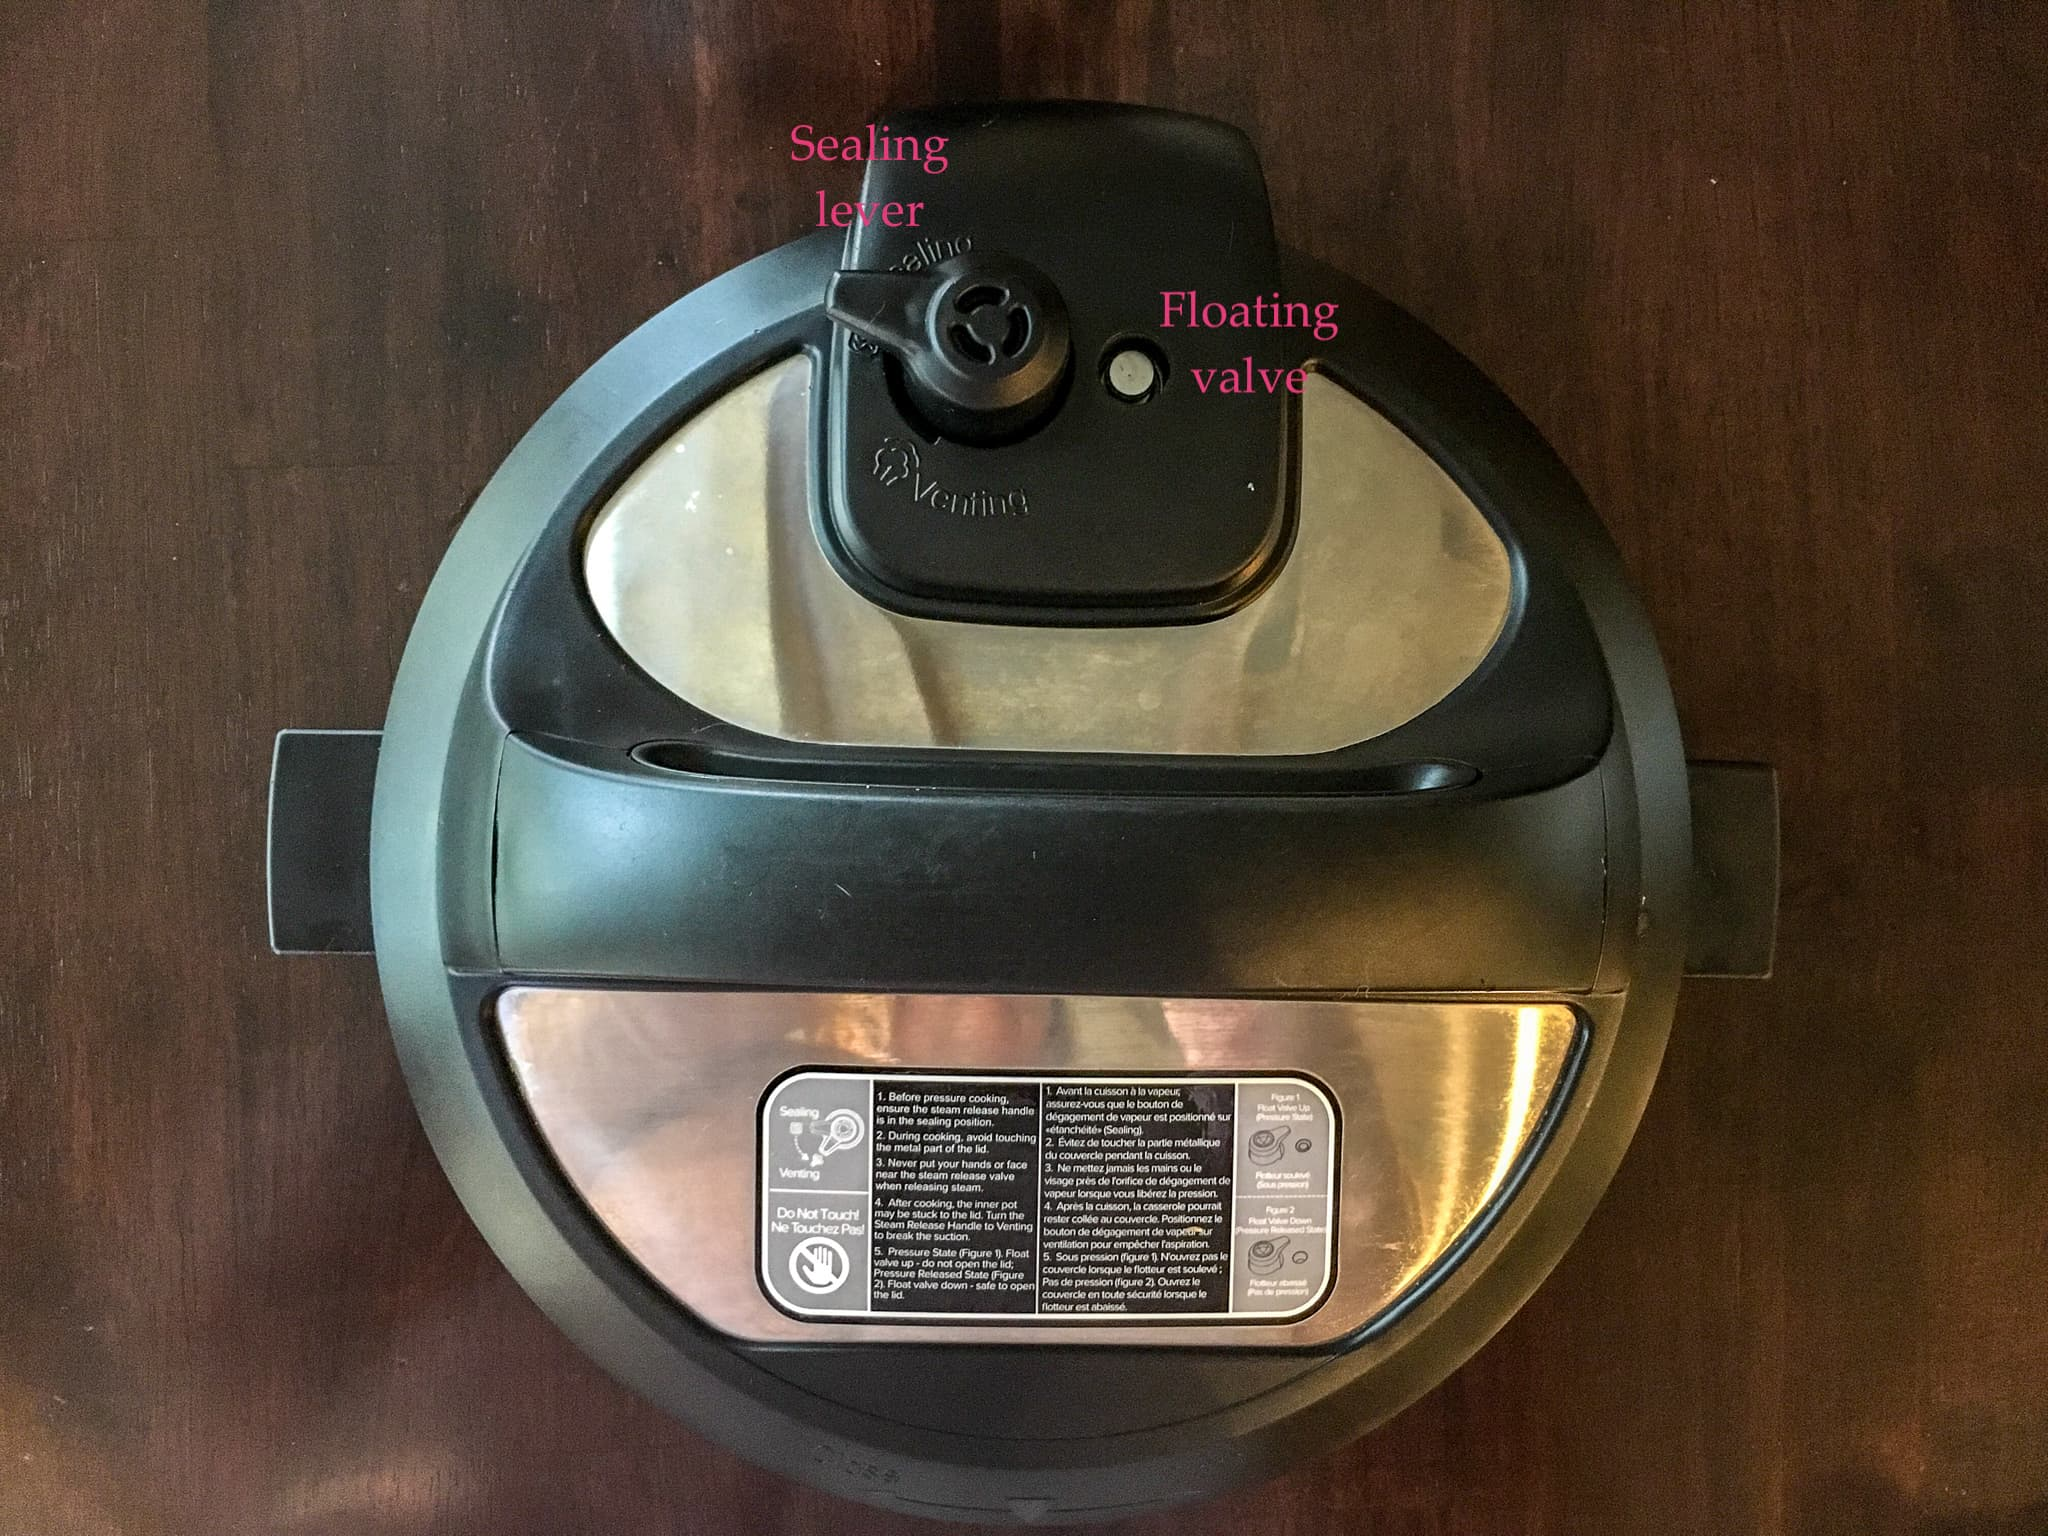 pressure cooking basics: the sealing lever and floating valve